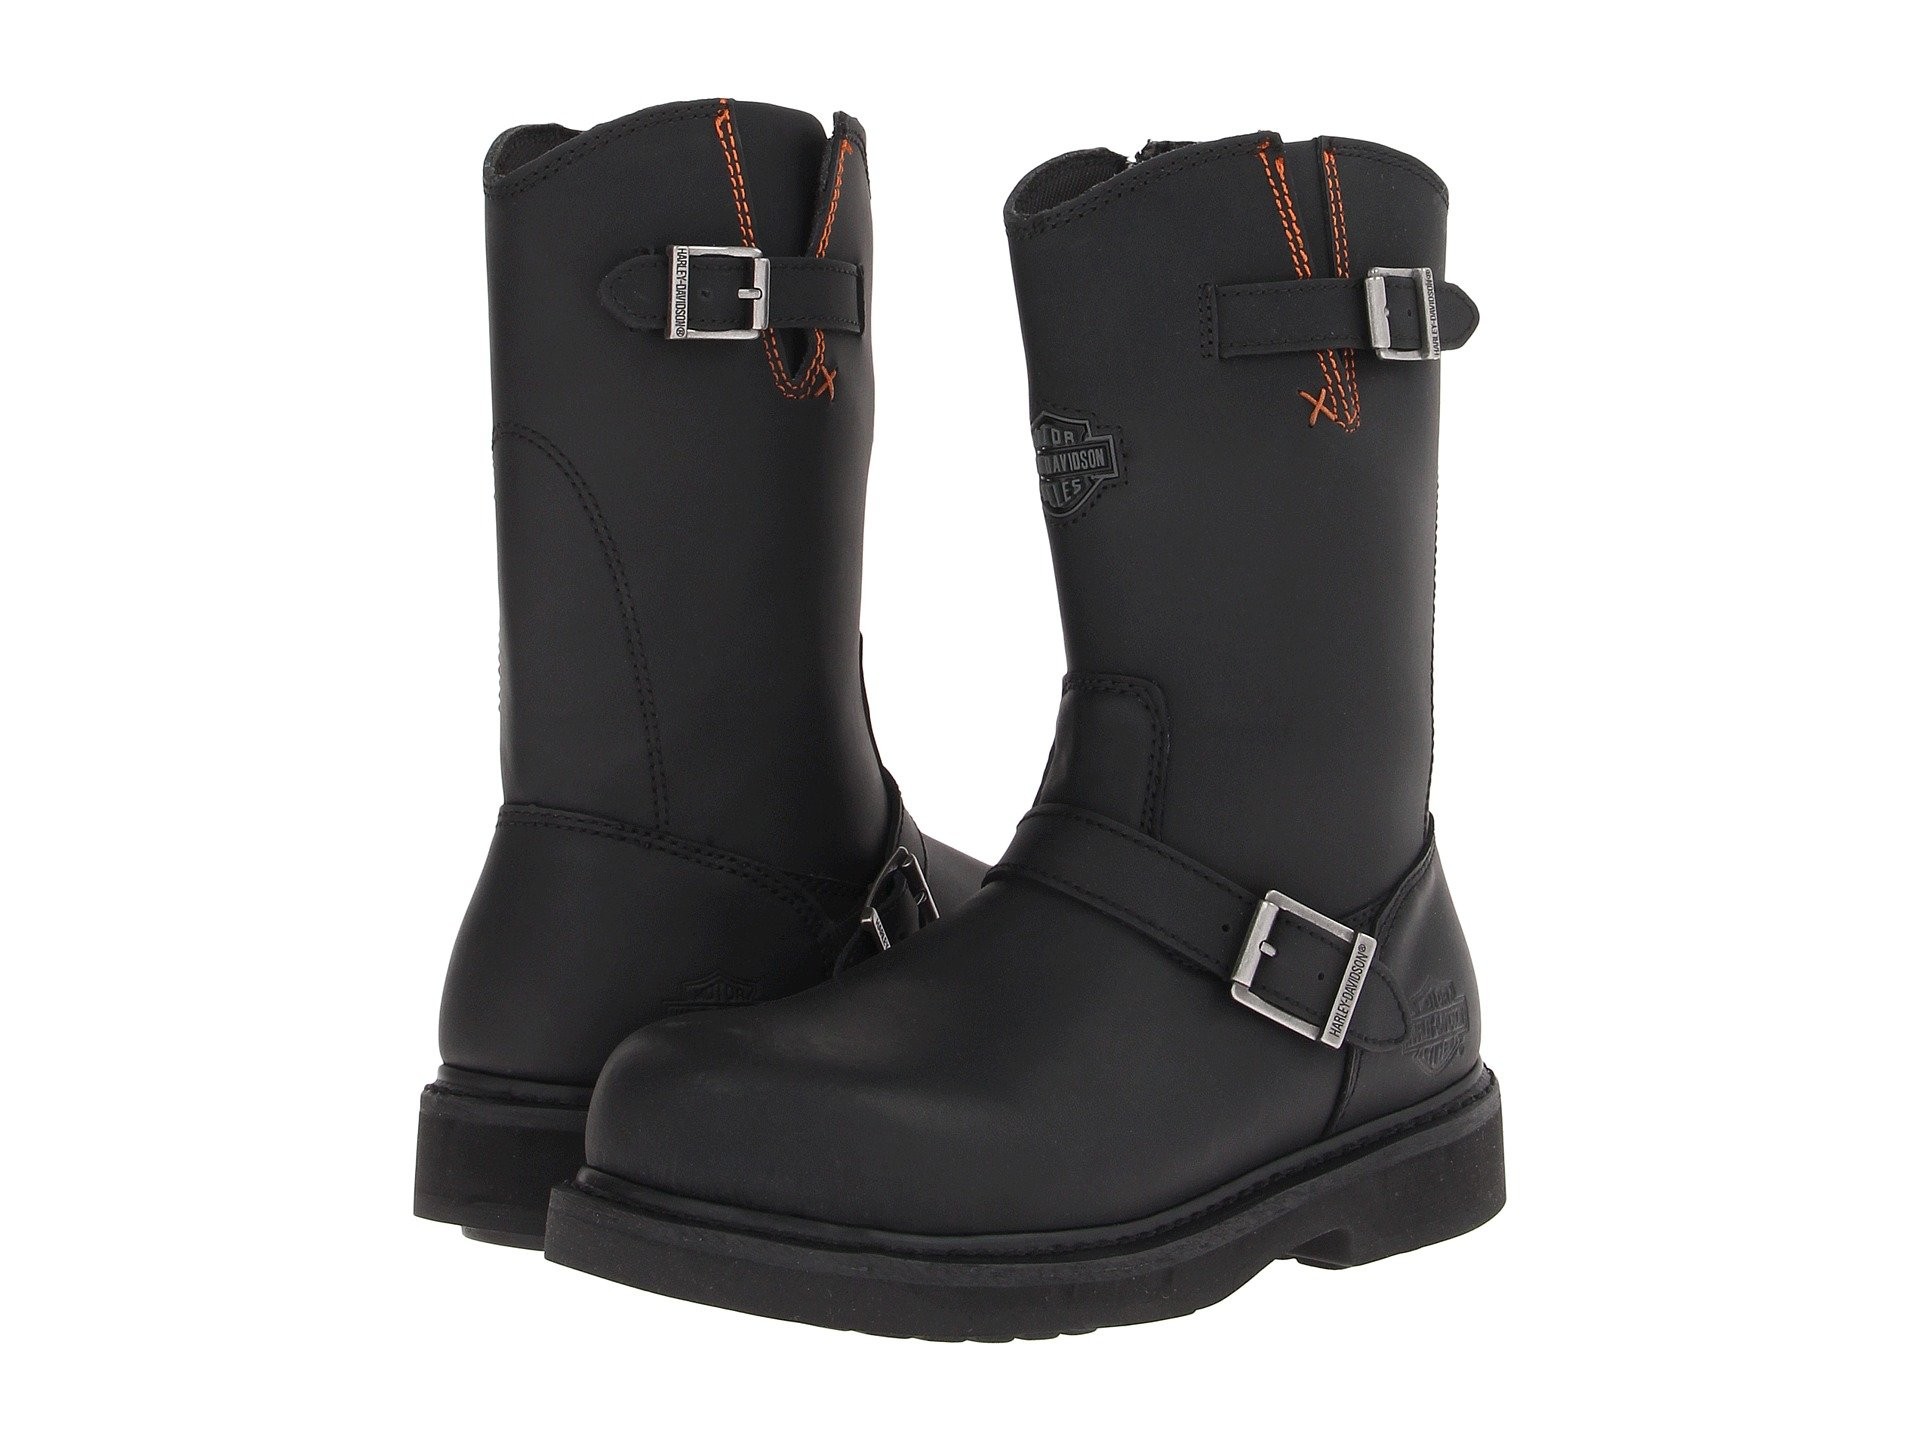 cec6f5827ed Men's Harley-Davidson Boots + FREE SHIPPING | Shoes | Zappos.com